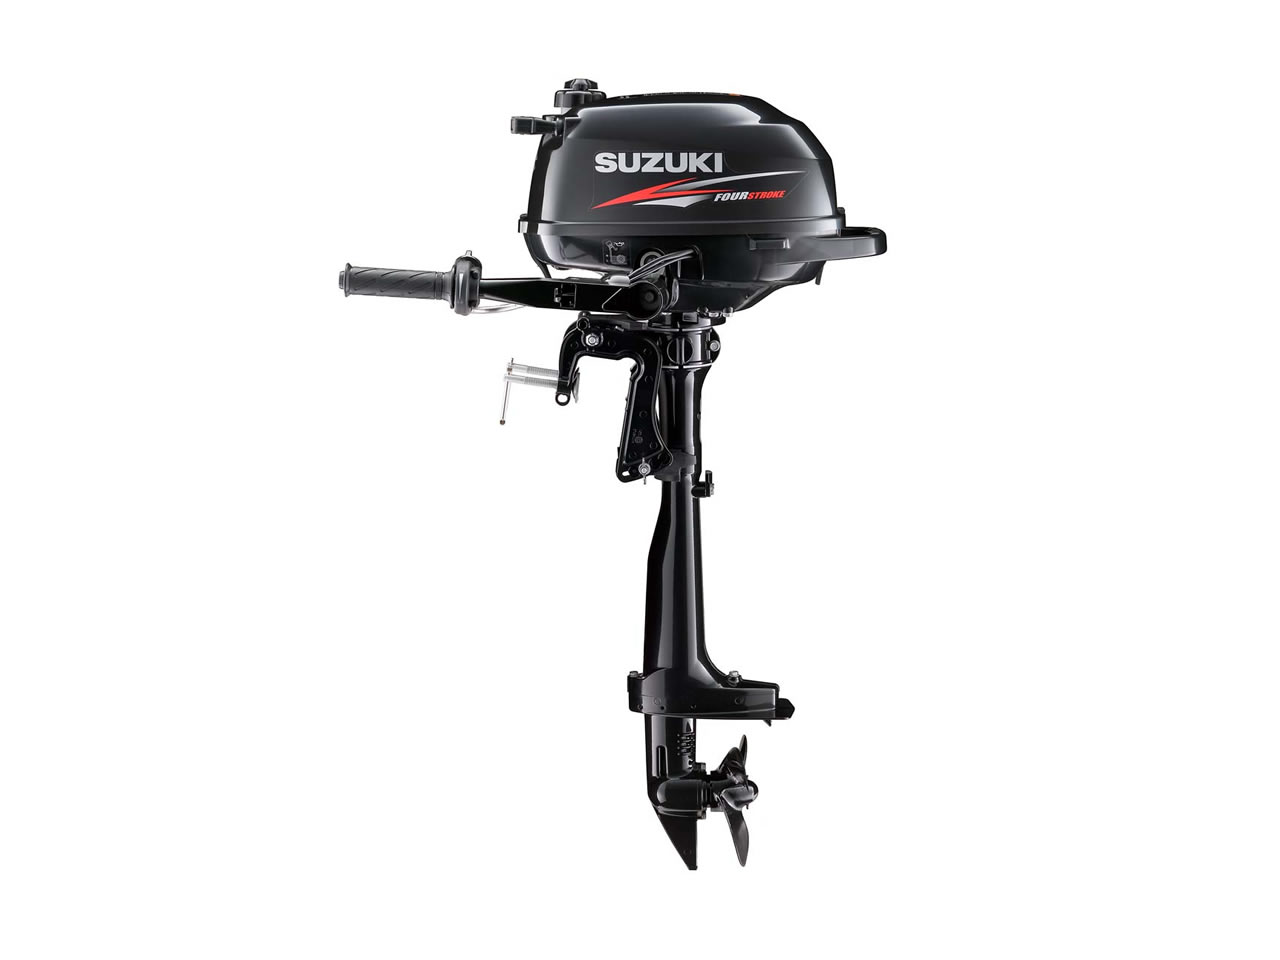 suzuki 4 hp 4 stroke outboard motor tiller 15 shaft engine ebay rh ebay com OEM Suzuki Outboard Manual Suzuki Outboard Owner Manual